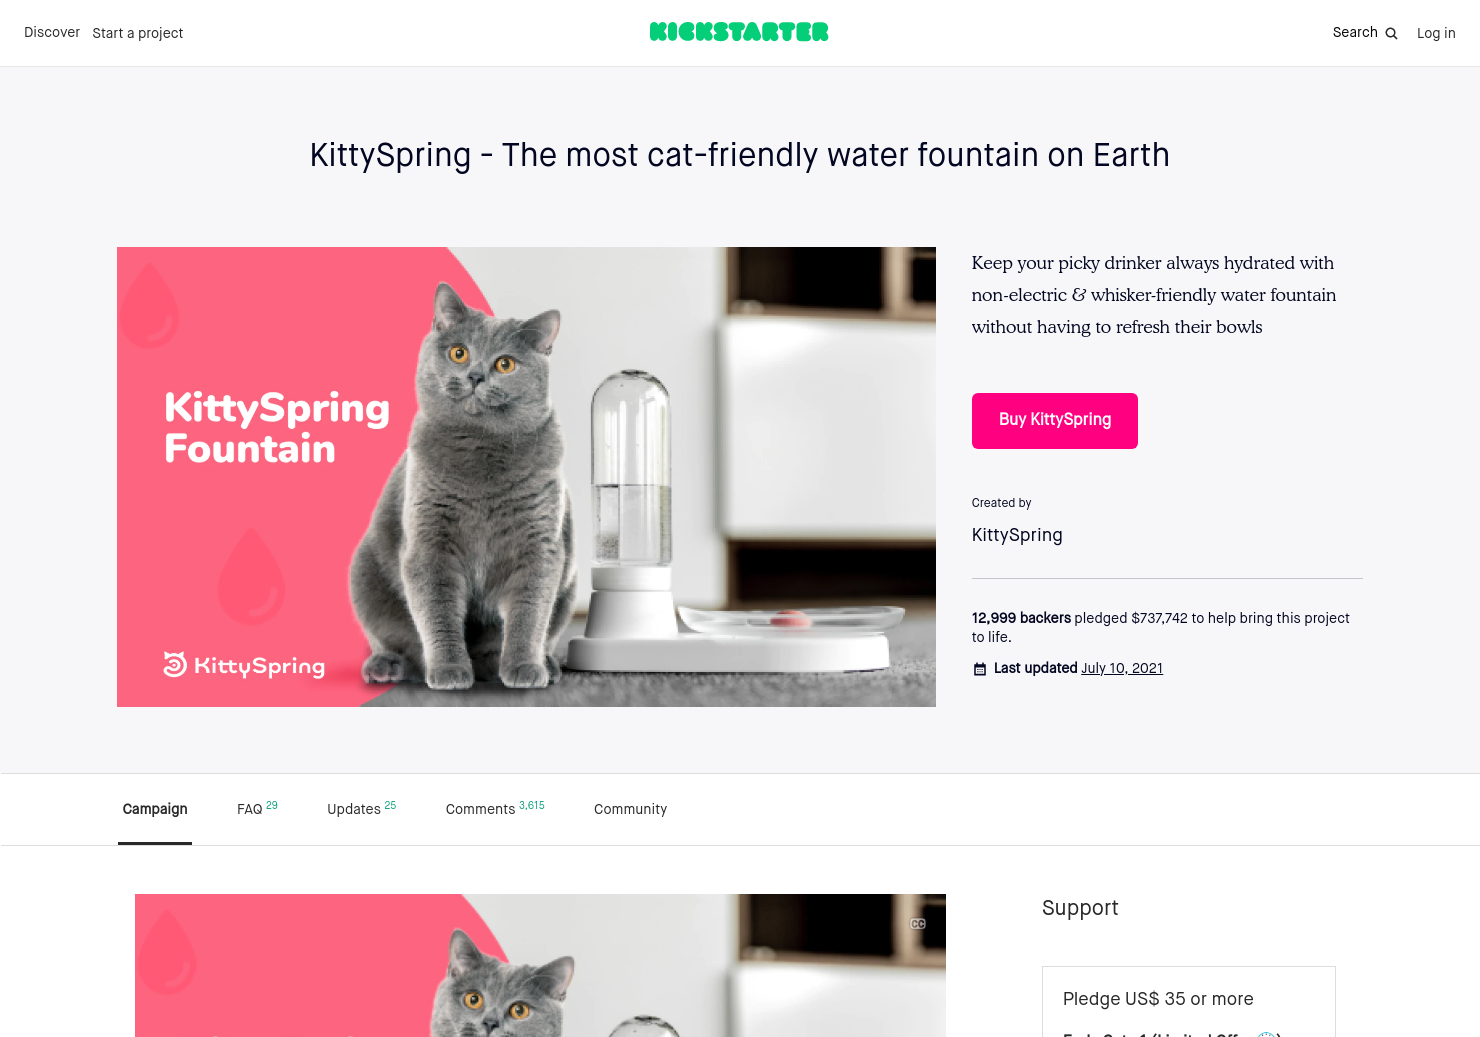 KittySpring